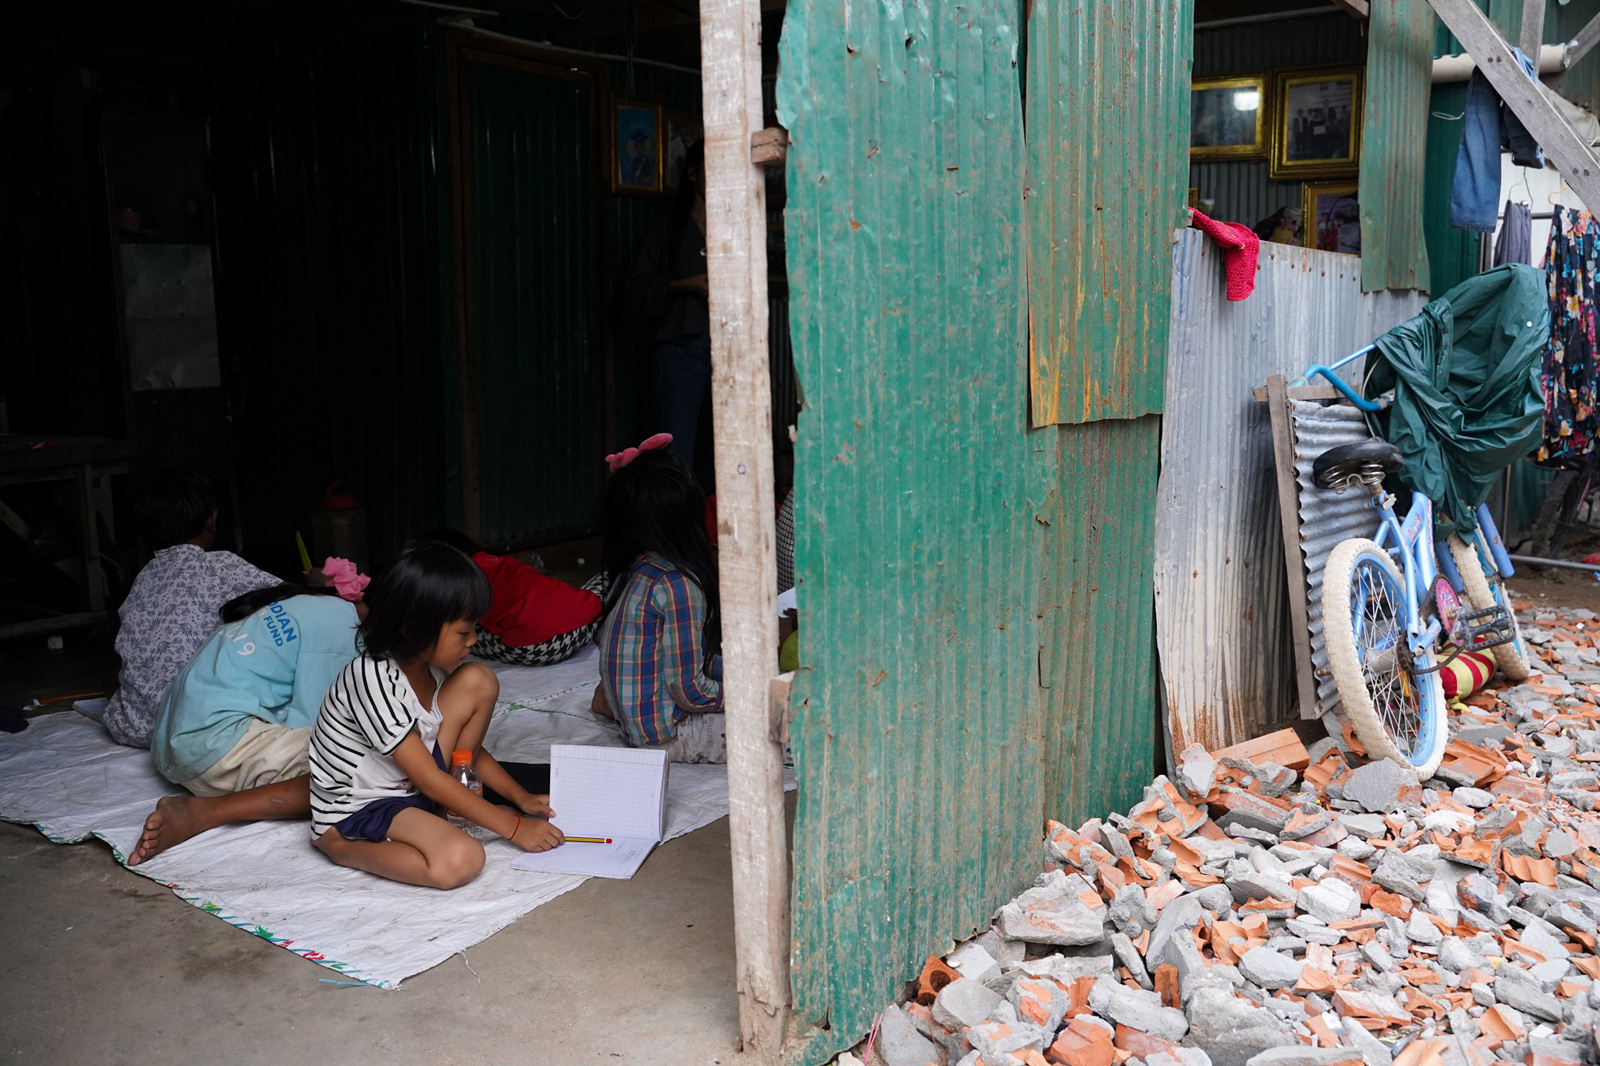 Children in Phnom Penh's Stung Meanchey District study under neighbours' homes while some schools remain closed due to the coronavirus pandemic.